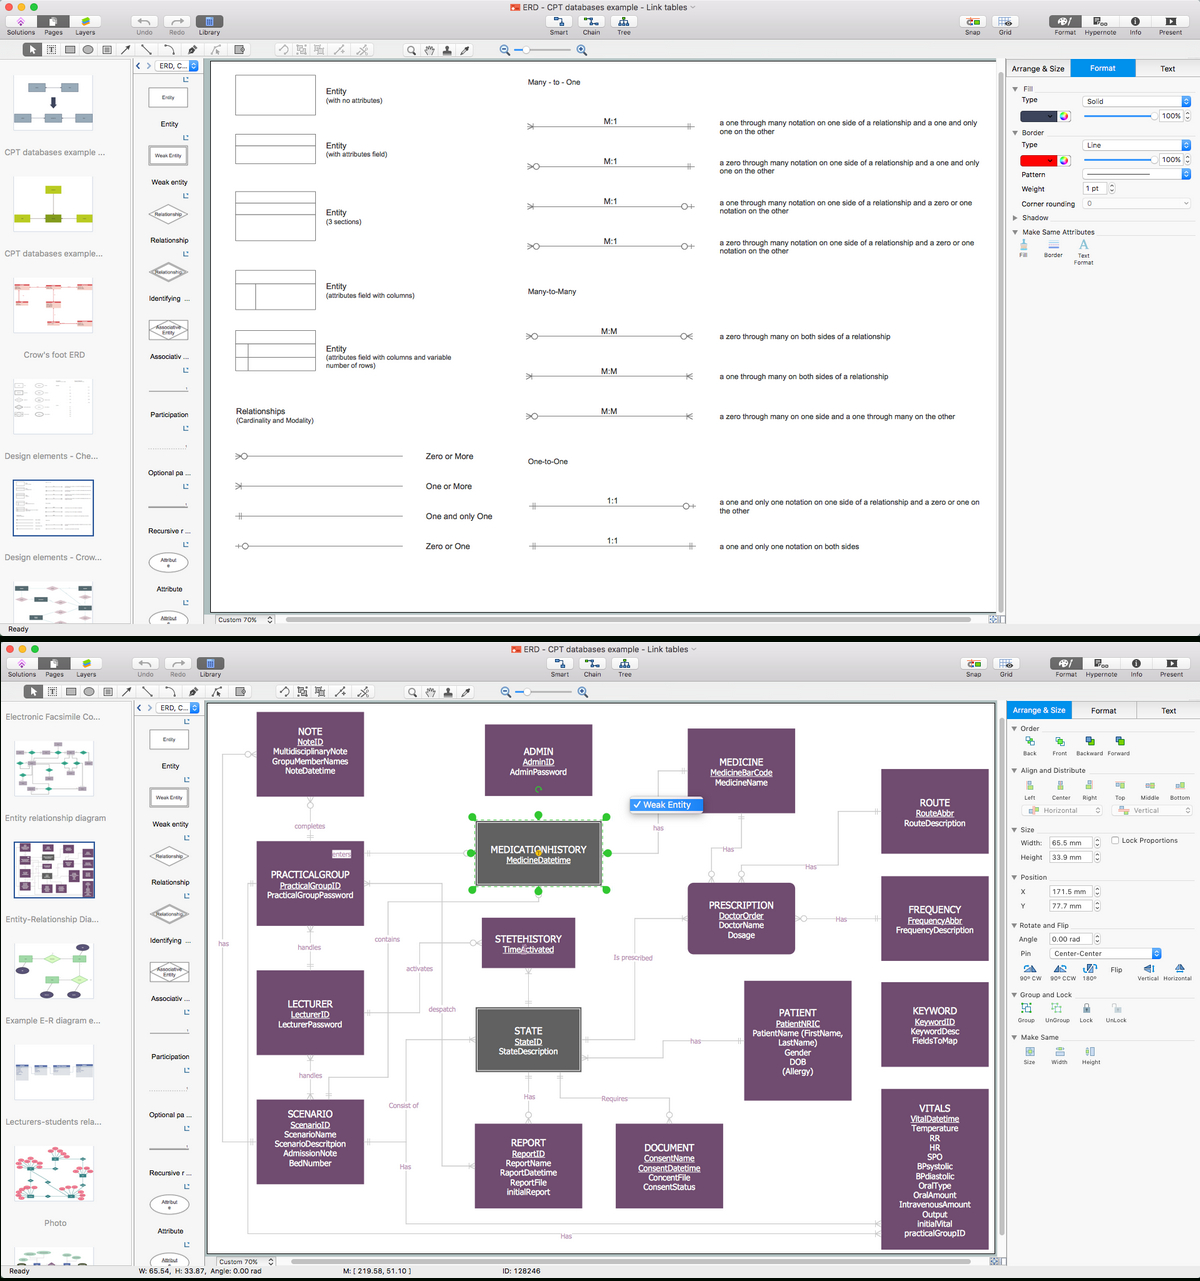 Entity Relationship Diagram Software For Mac | Entity intended for Entity Relationship Program